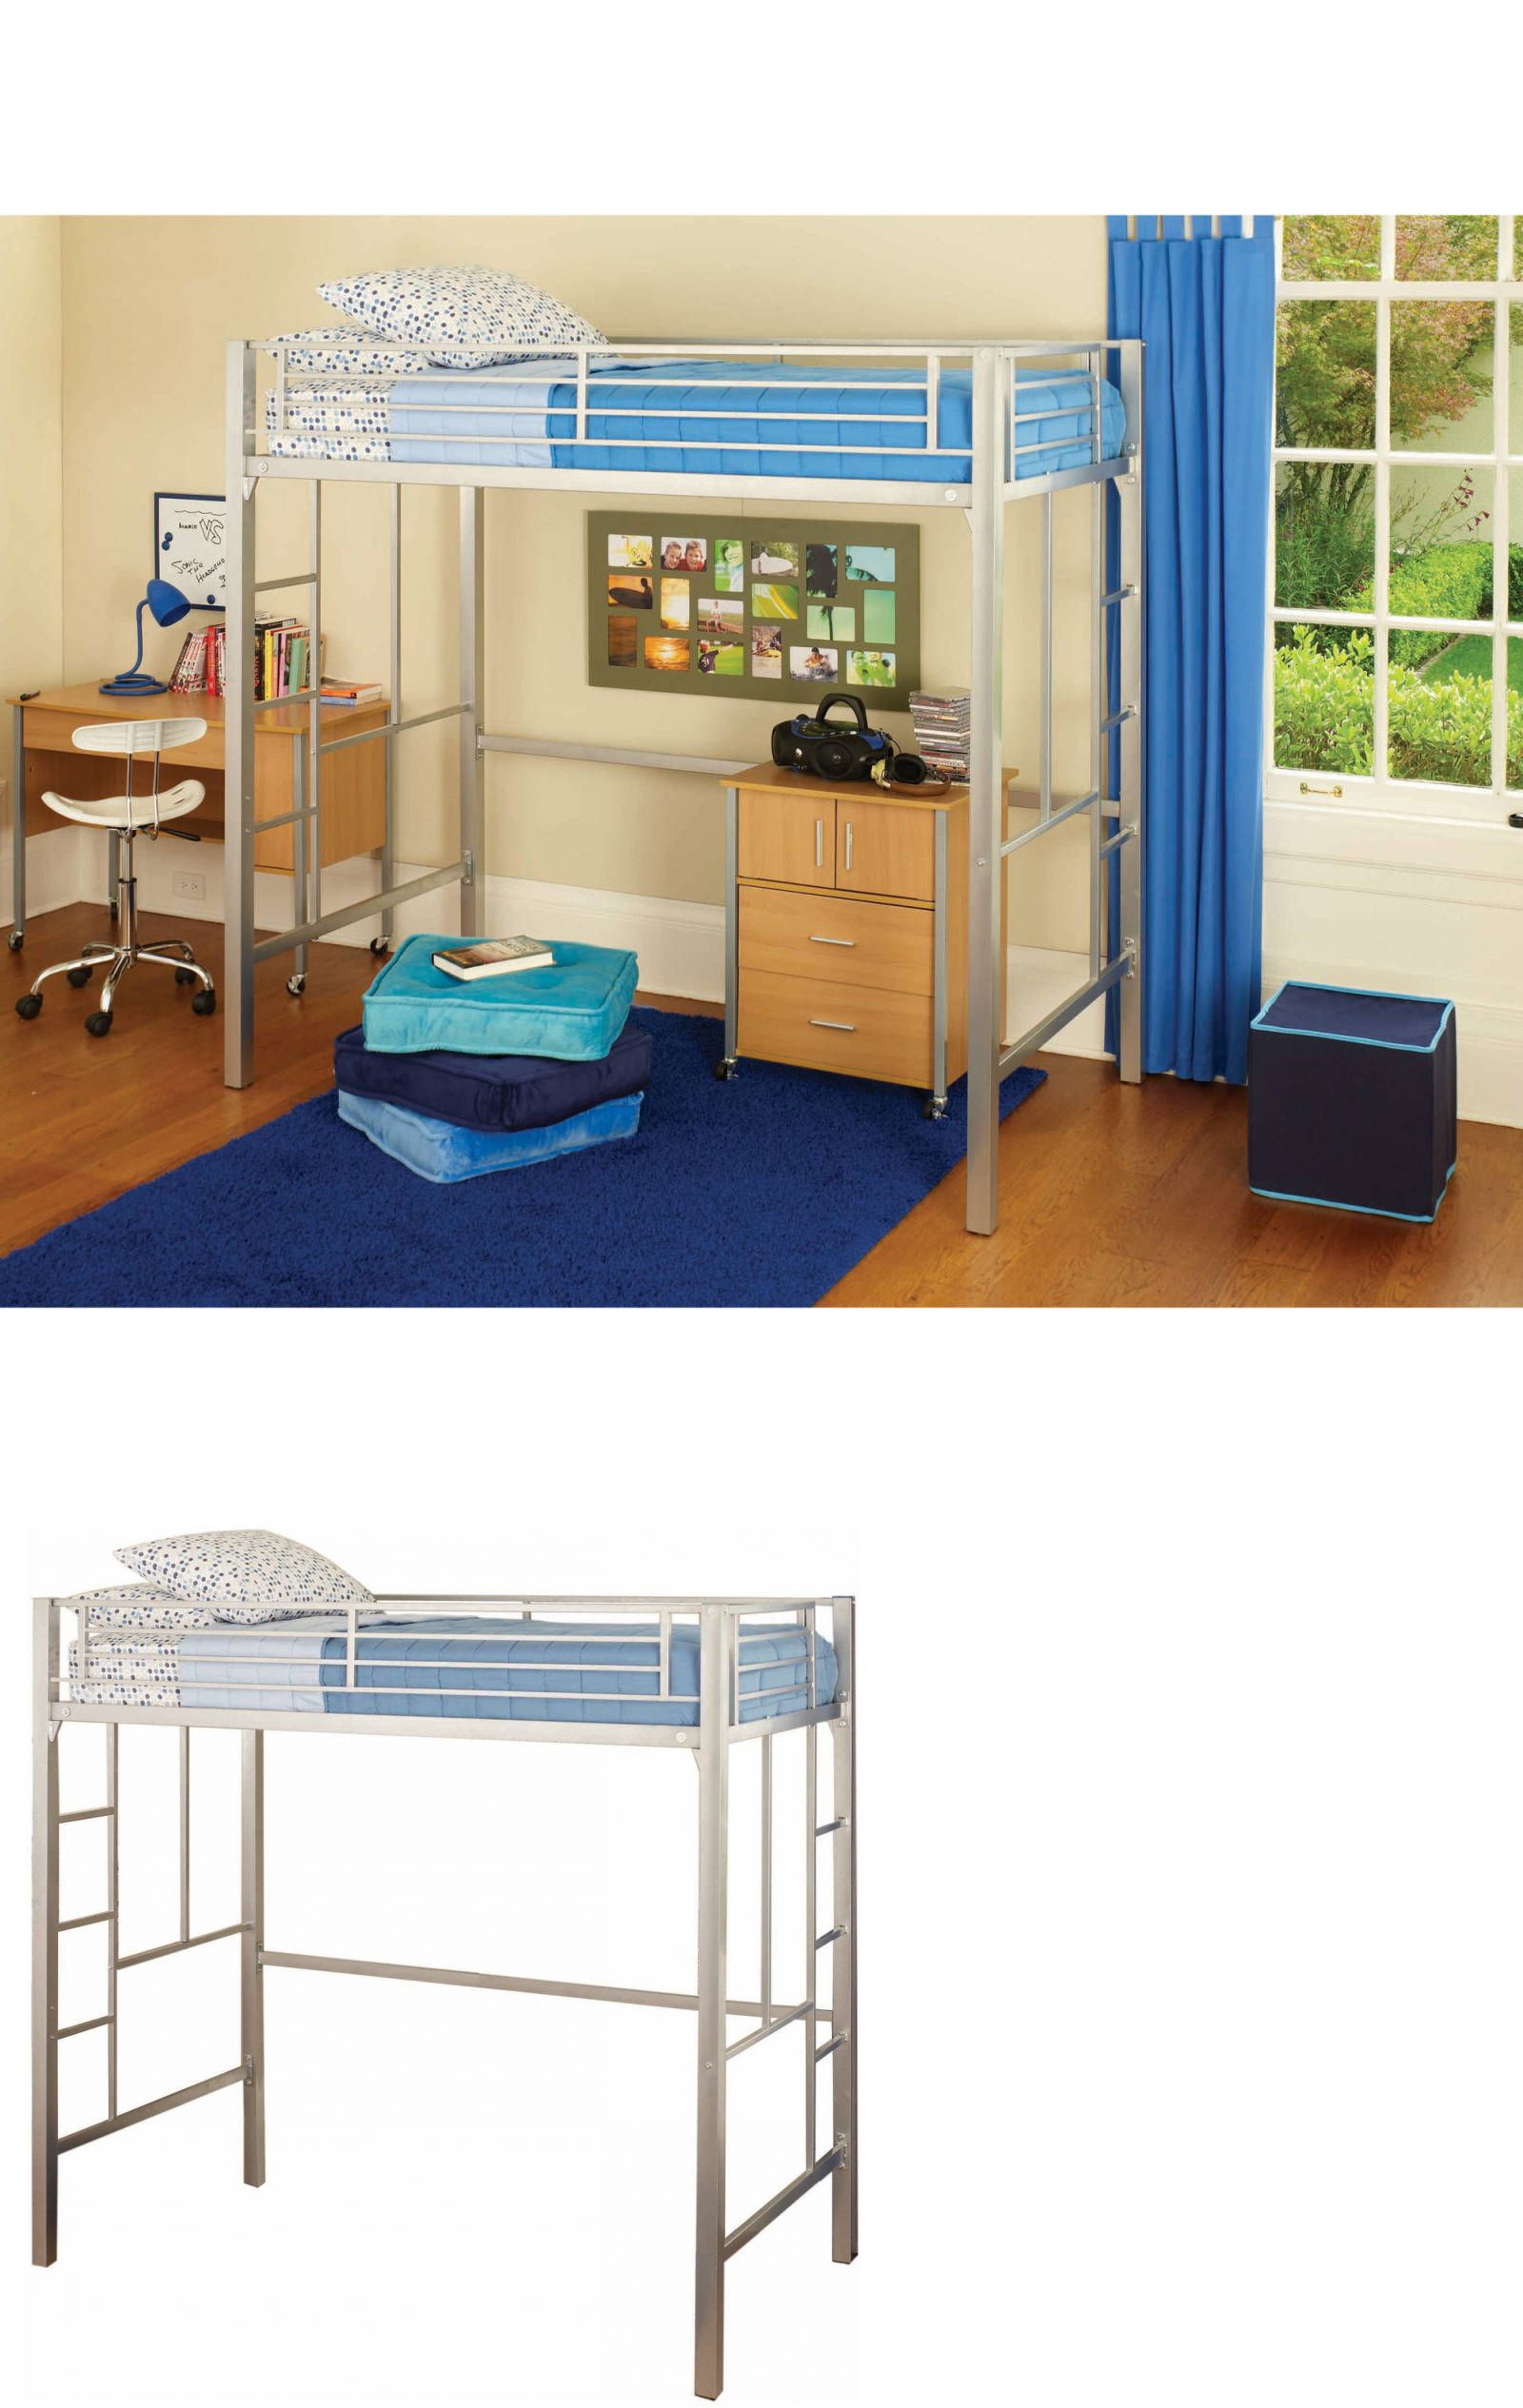 Kids at home loft twin bunk bed silver metal desk kids bedroom